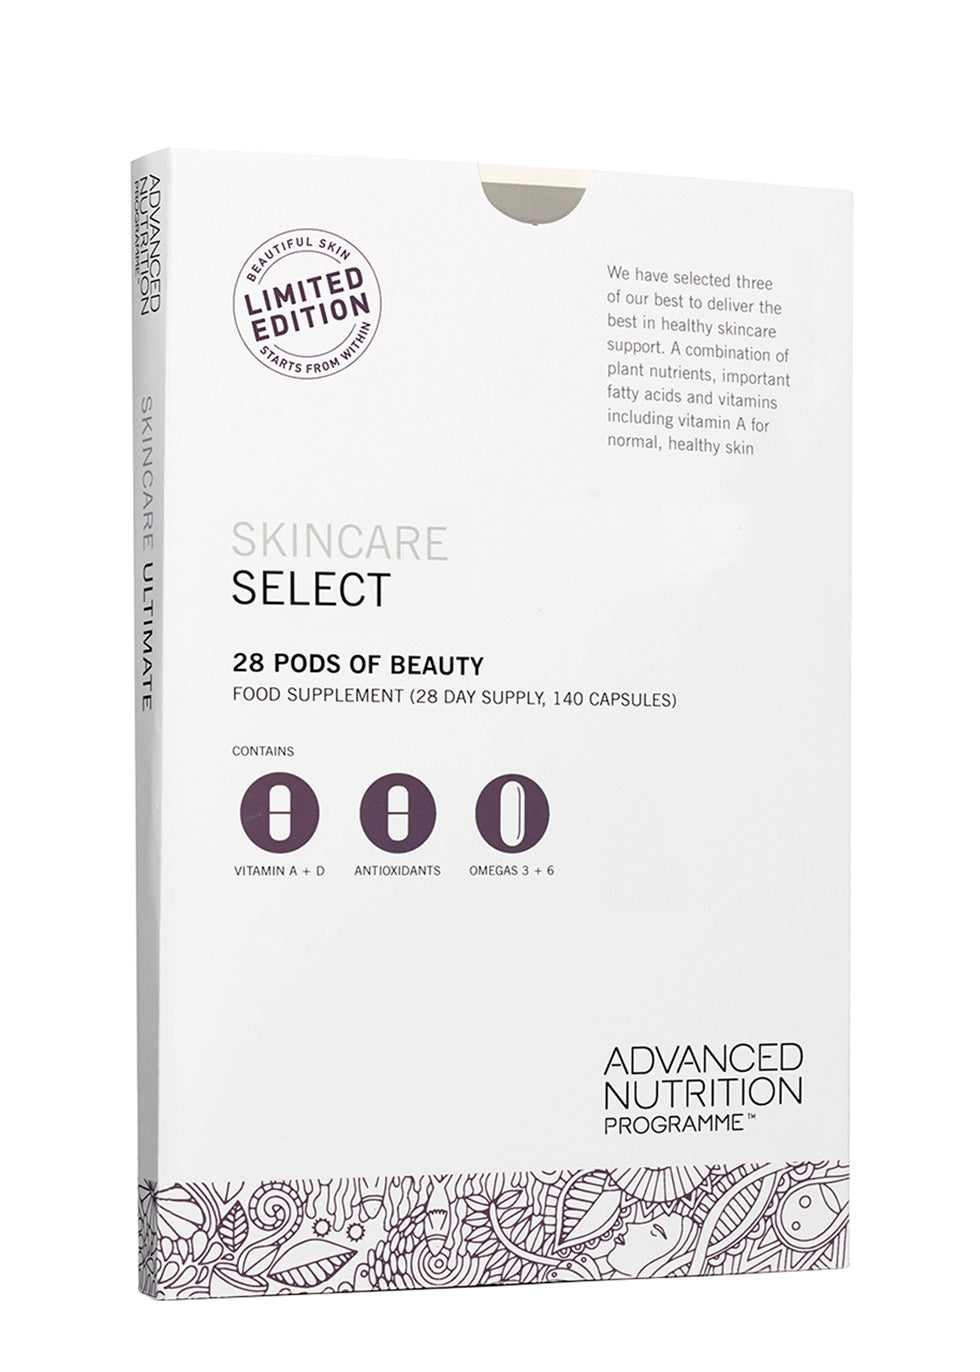 Advanced Nutrition Programme Skincare Select